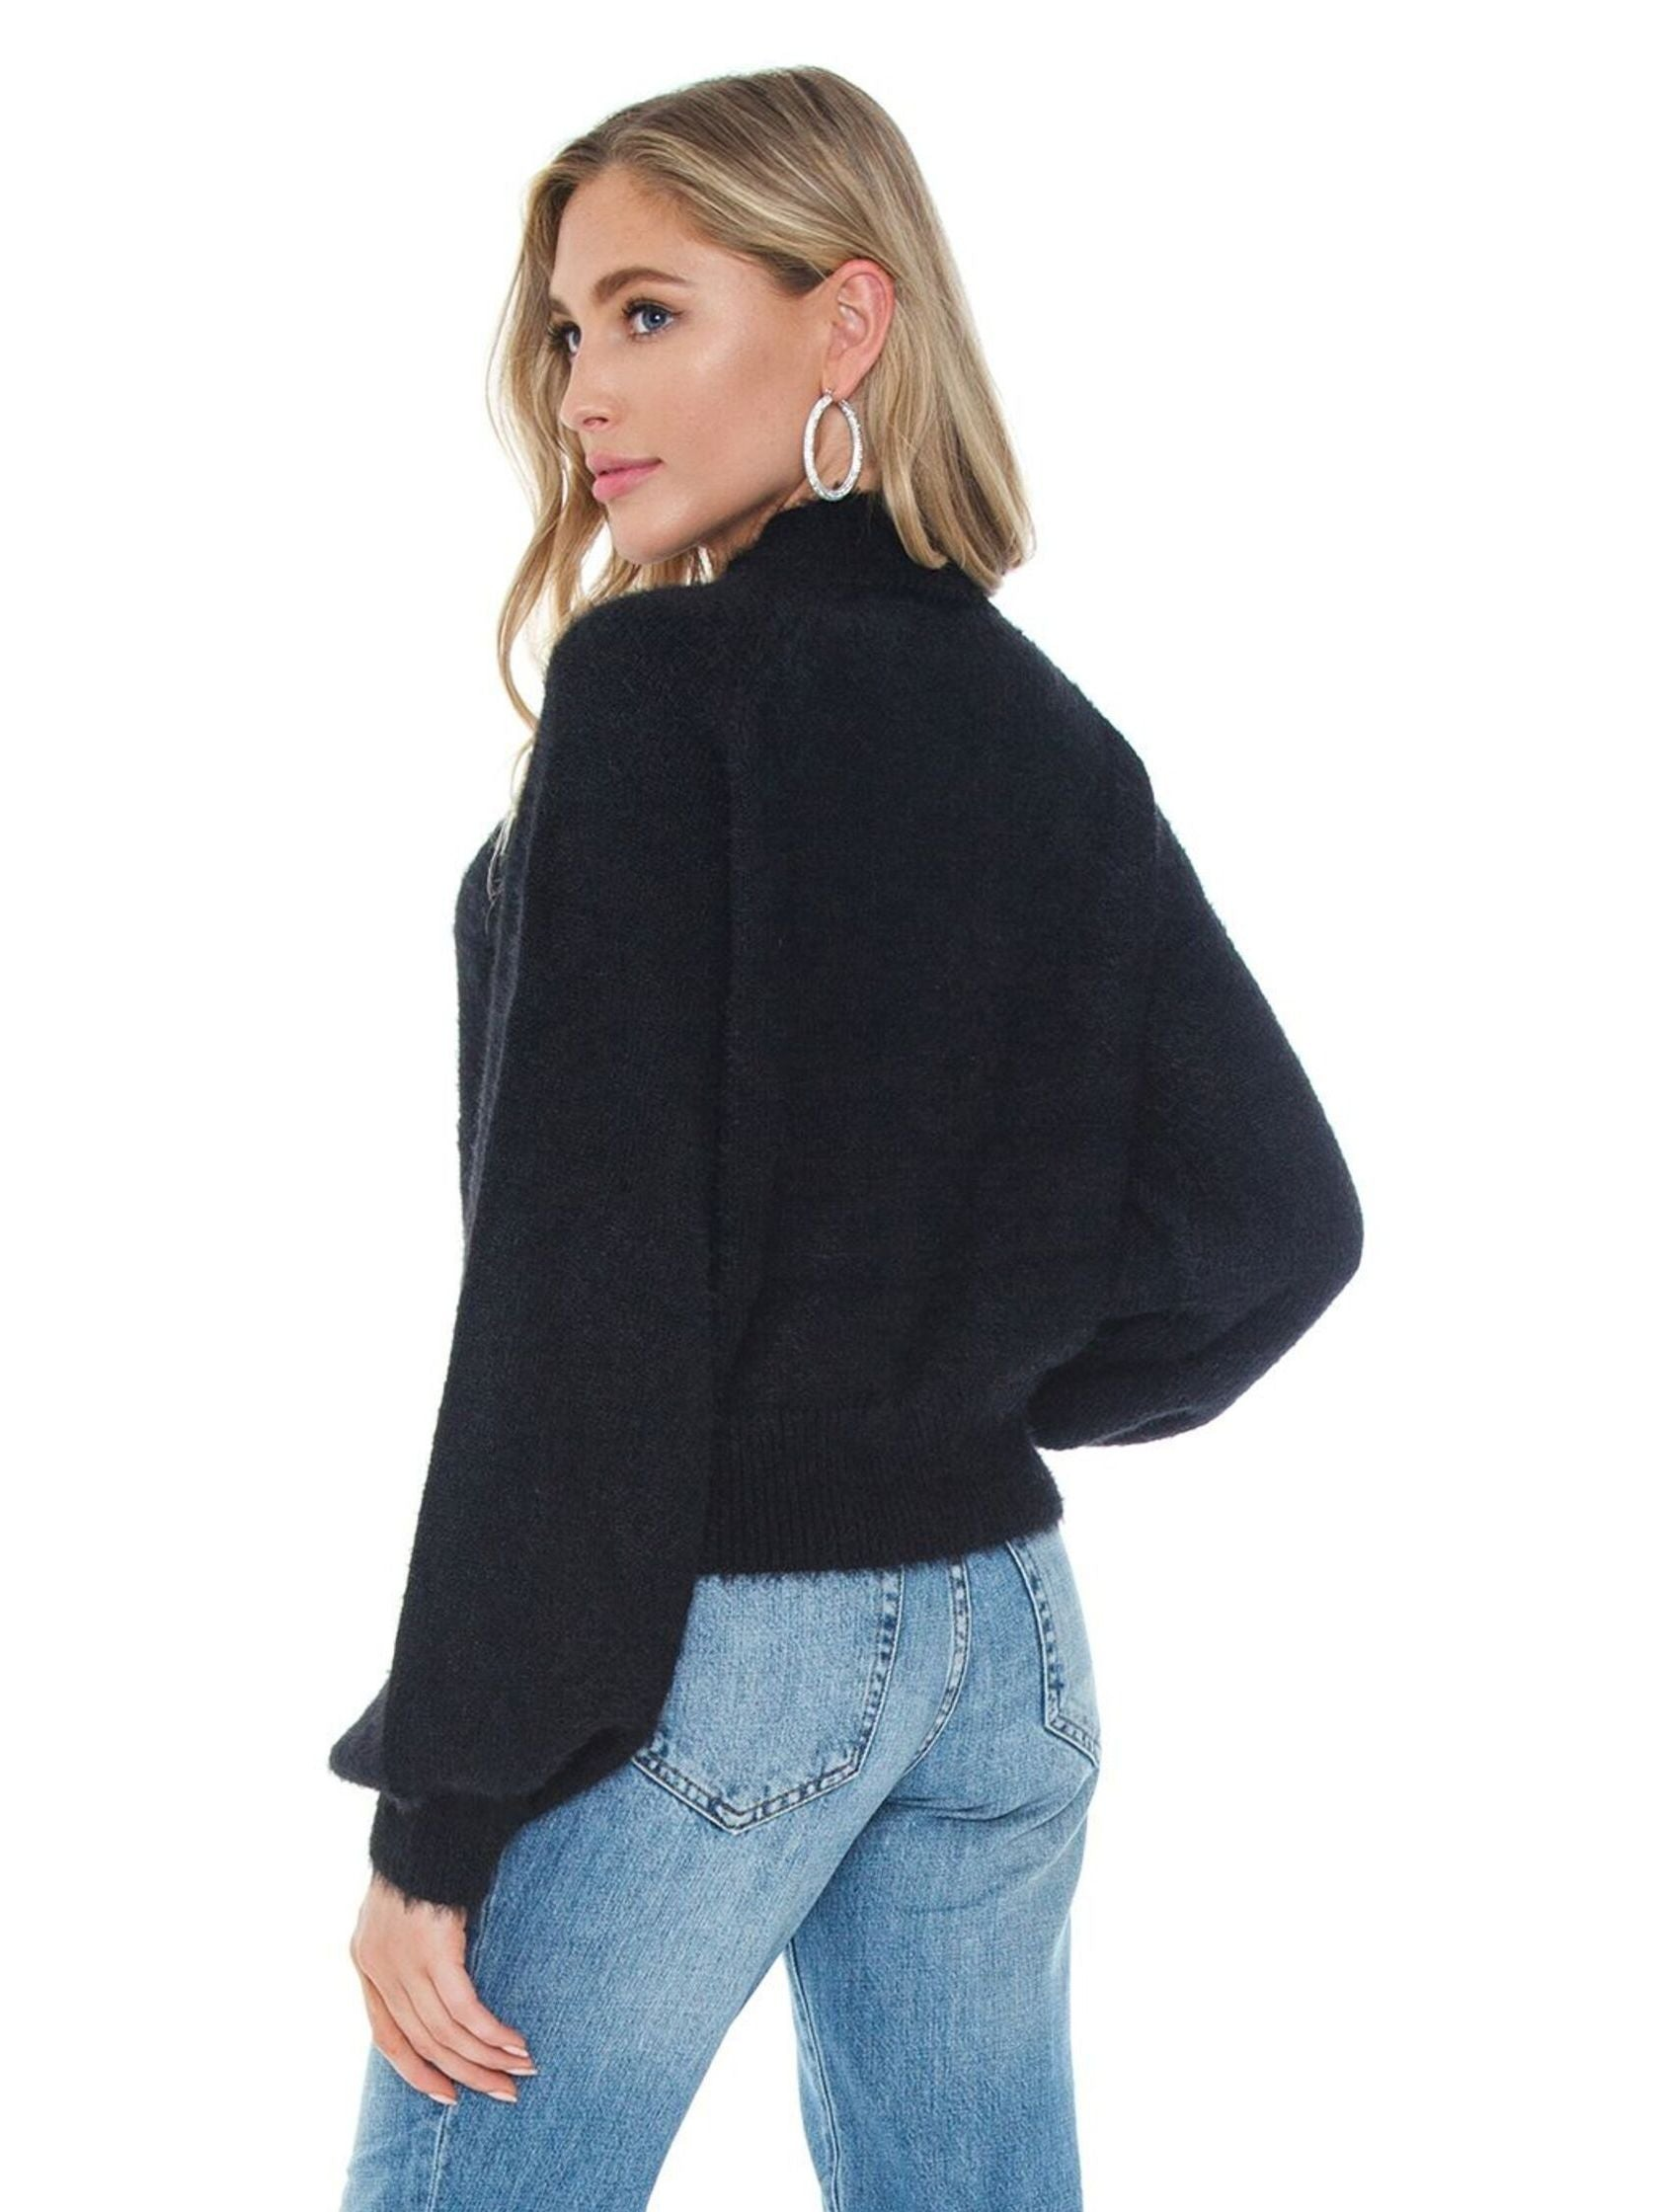 Women outfit in a sweater rental from BARDOT called Bell Sleeve Fluffy Knit